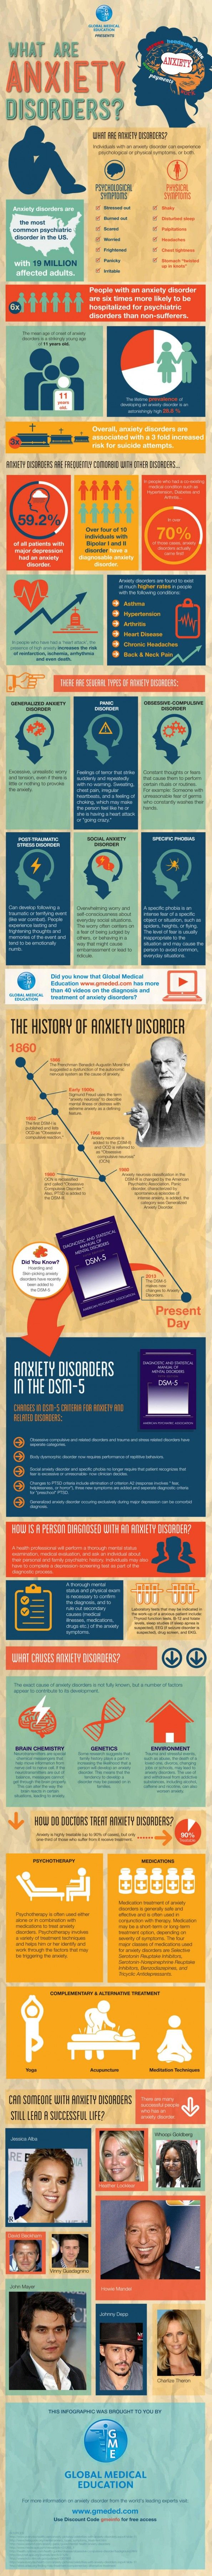 Treatment for anxiety - What Are Anxiety Disorders Infographic